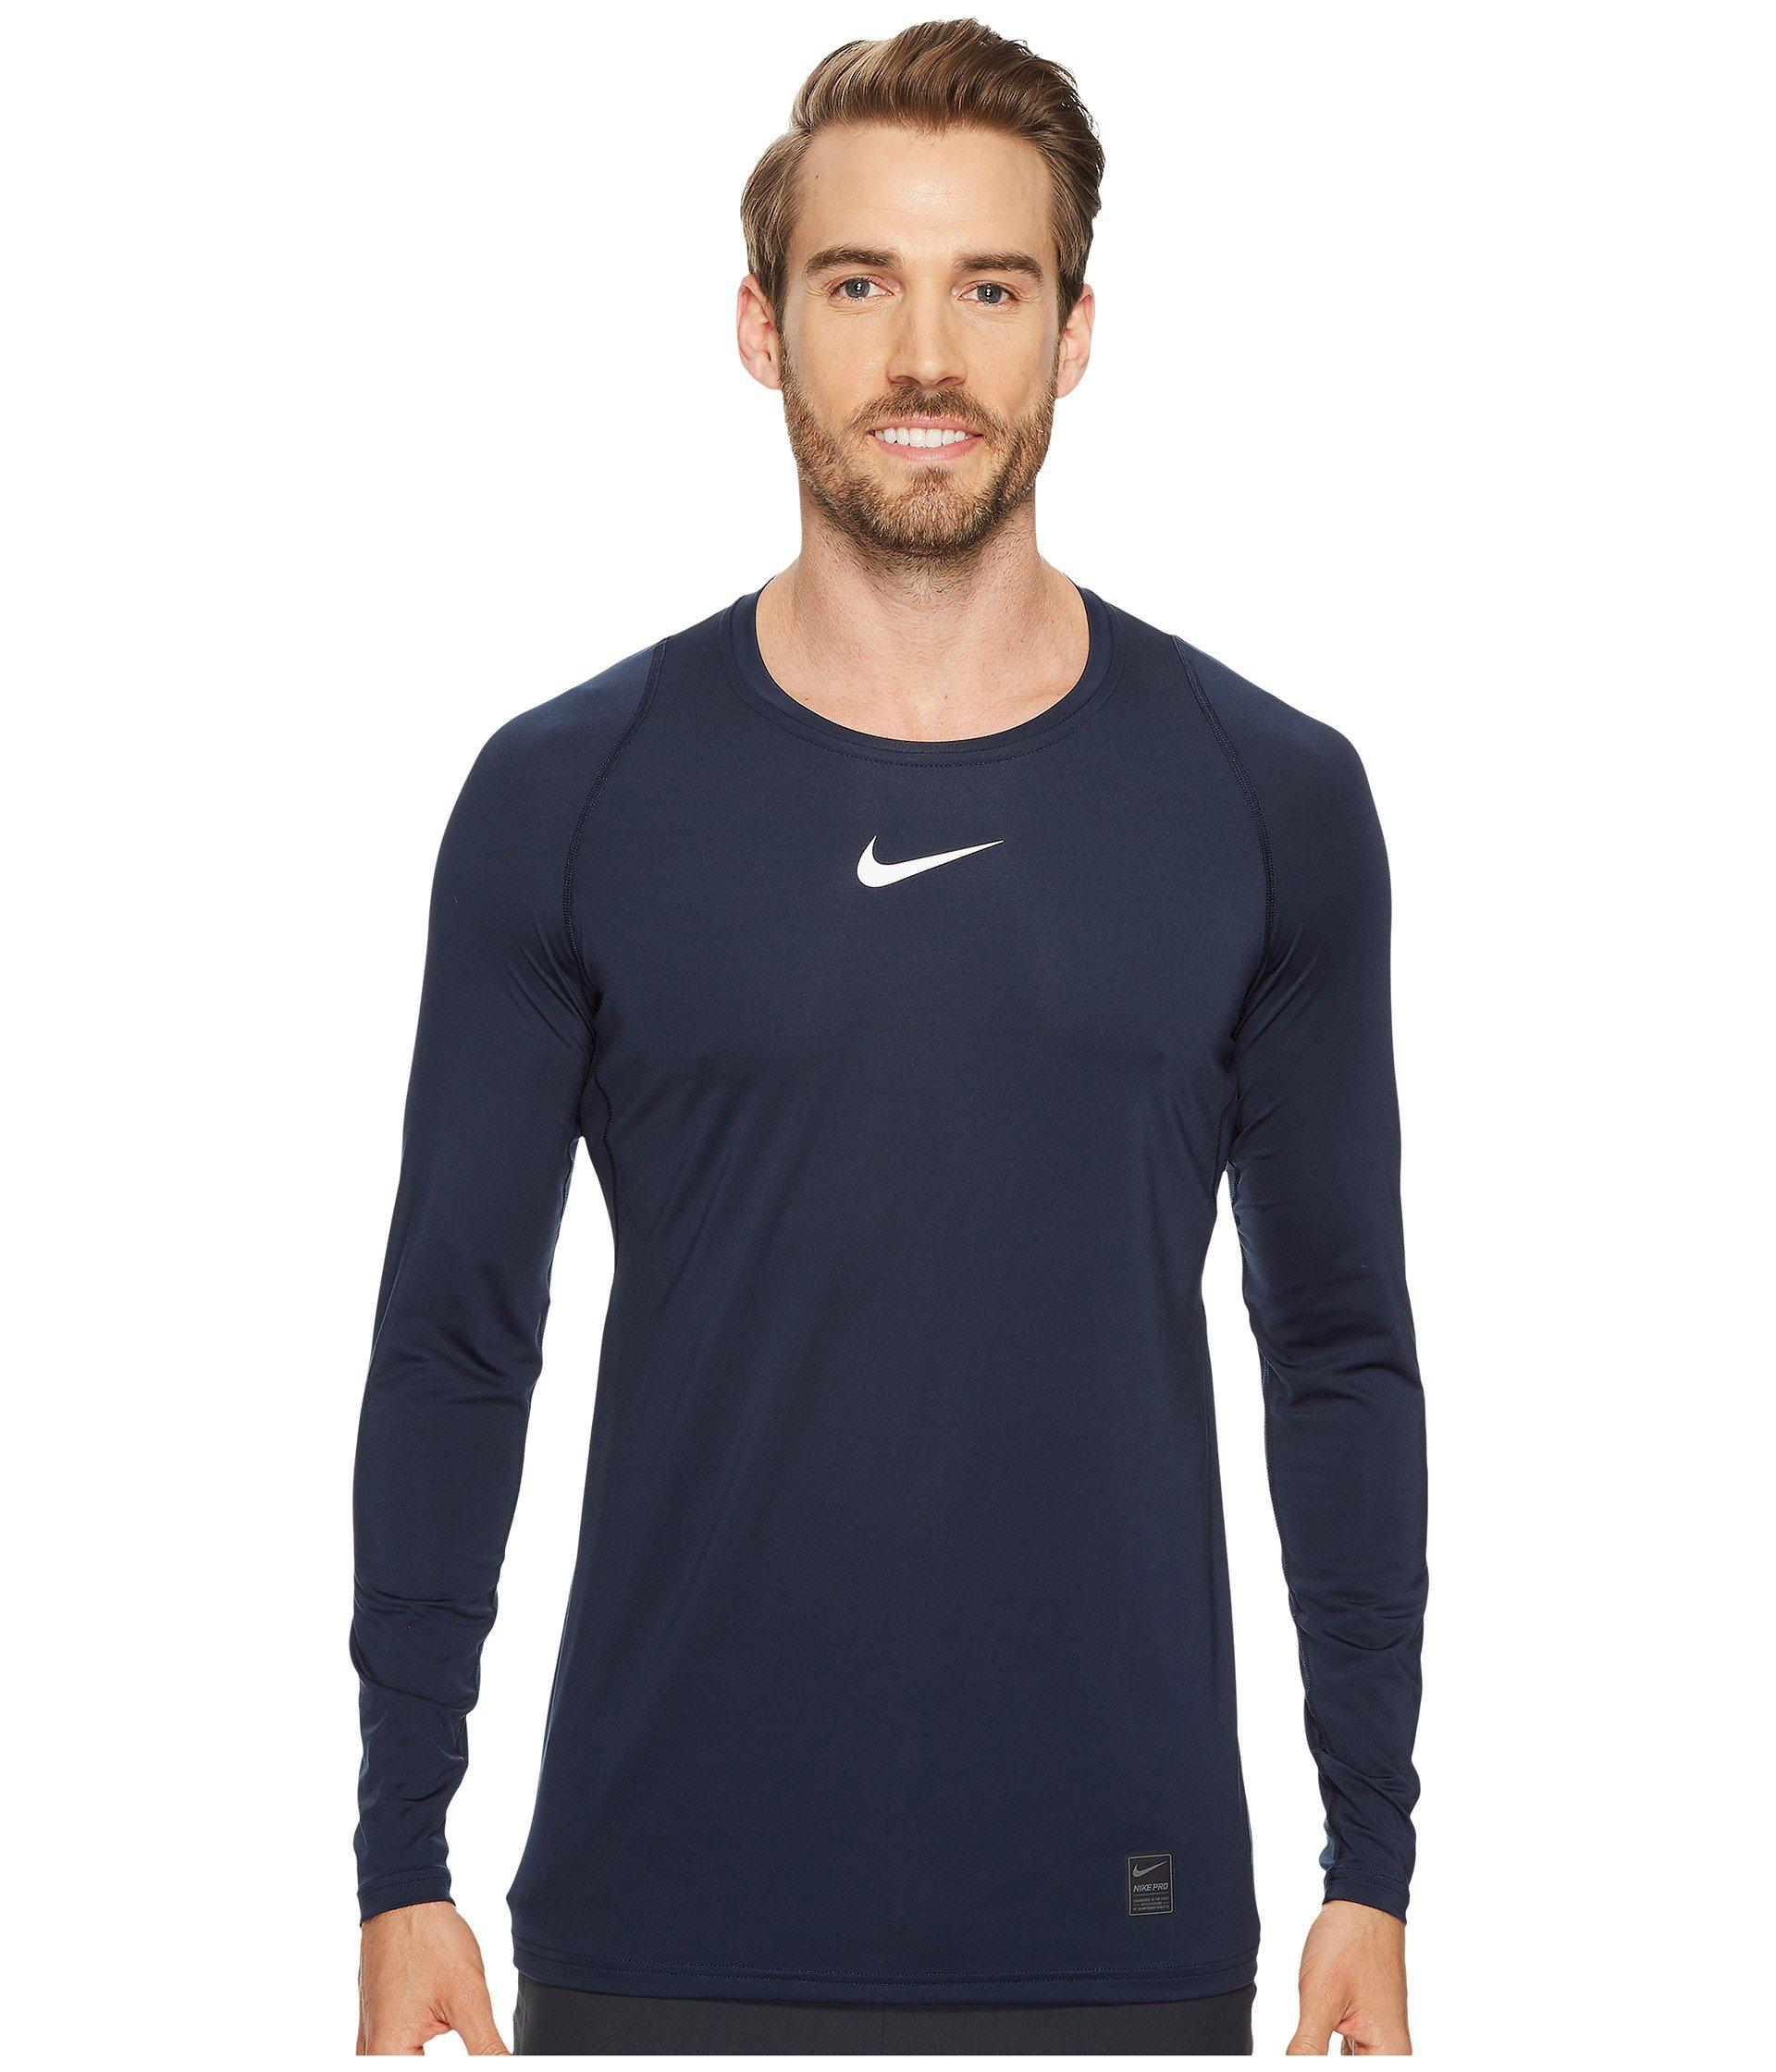 d2c163ab9242c Lyst - Nike Pro Fitted Long Sleeve Training Top (black white white ...